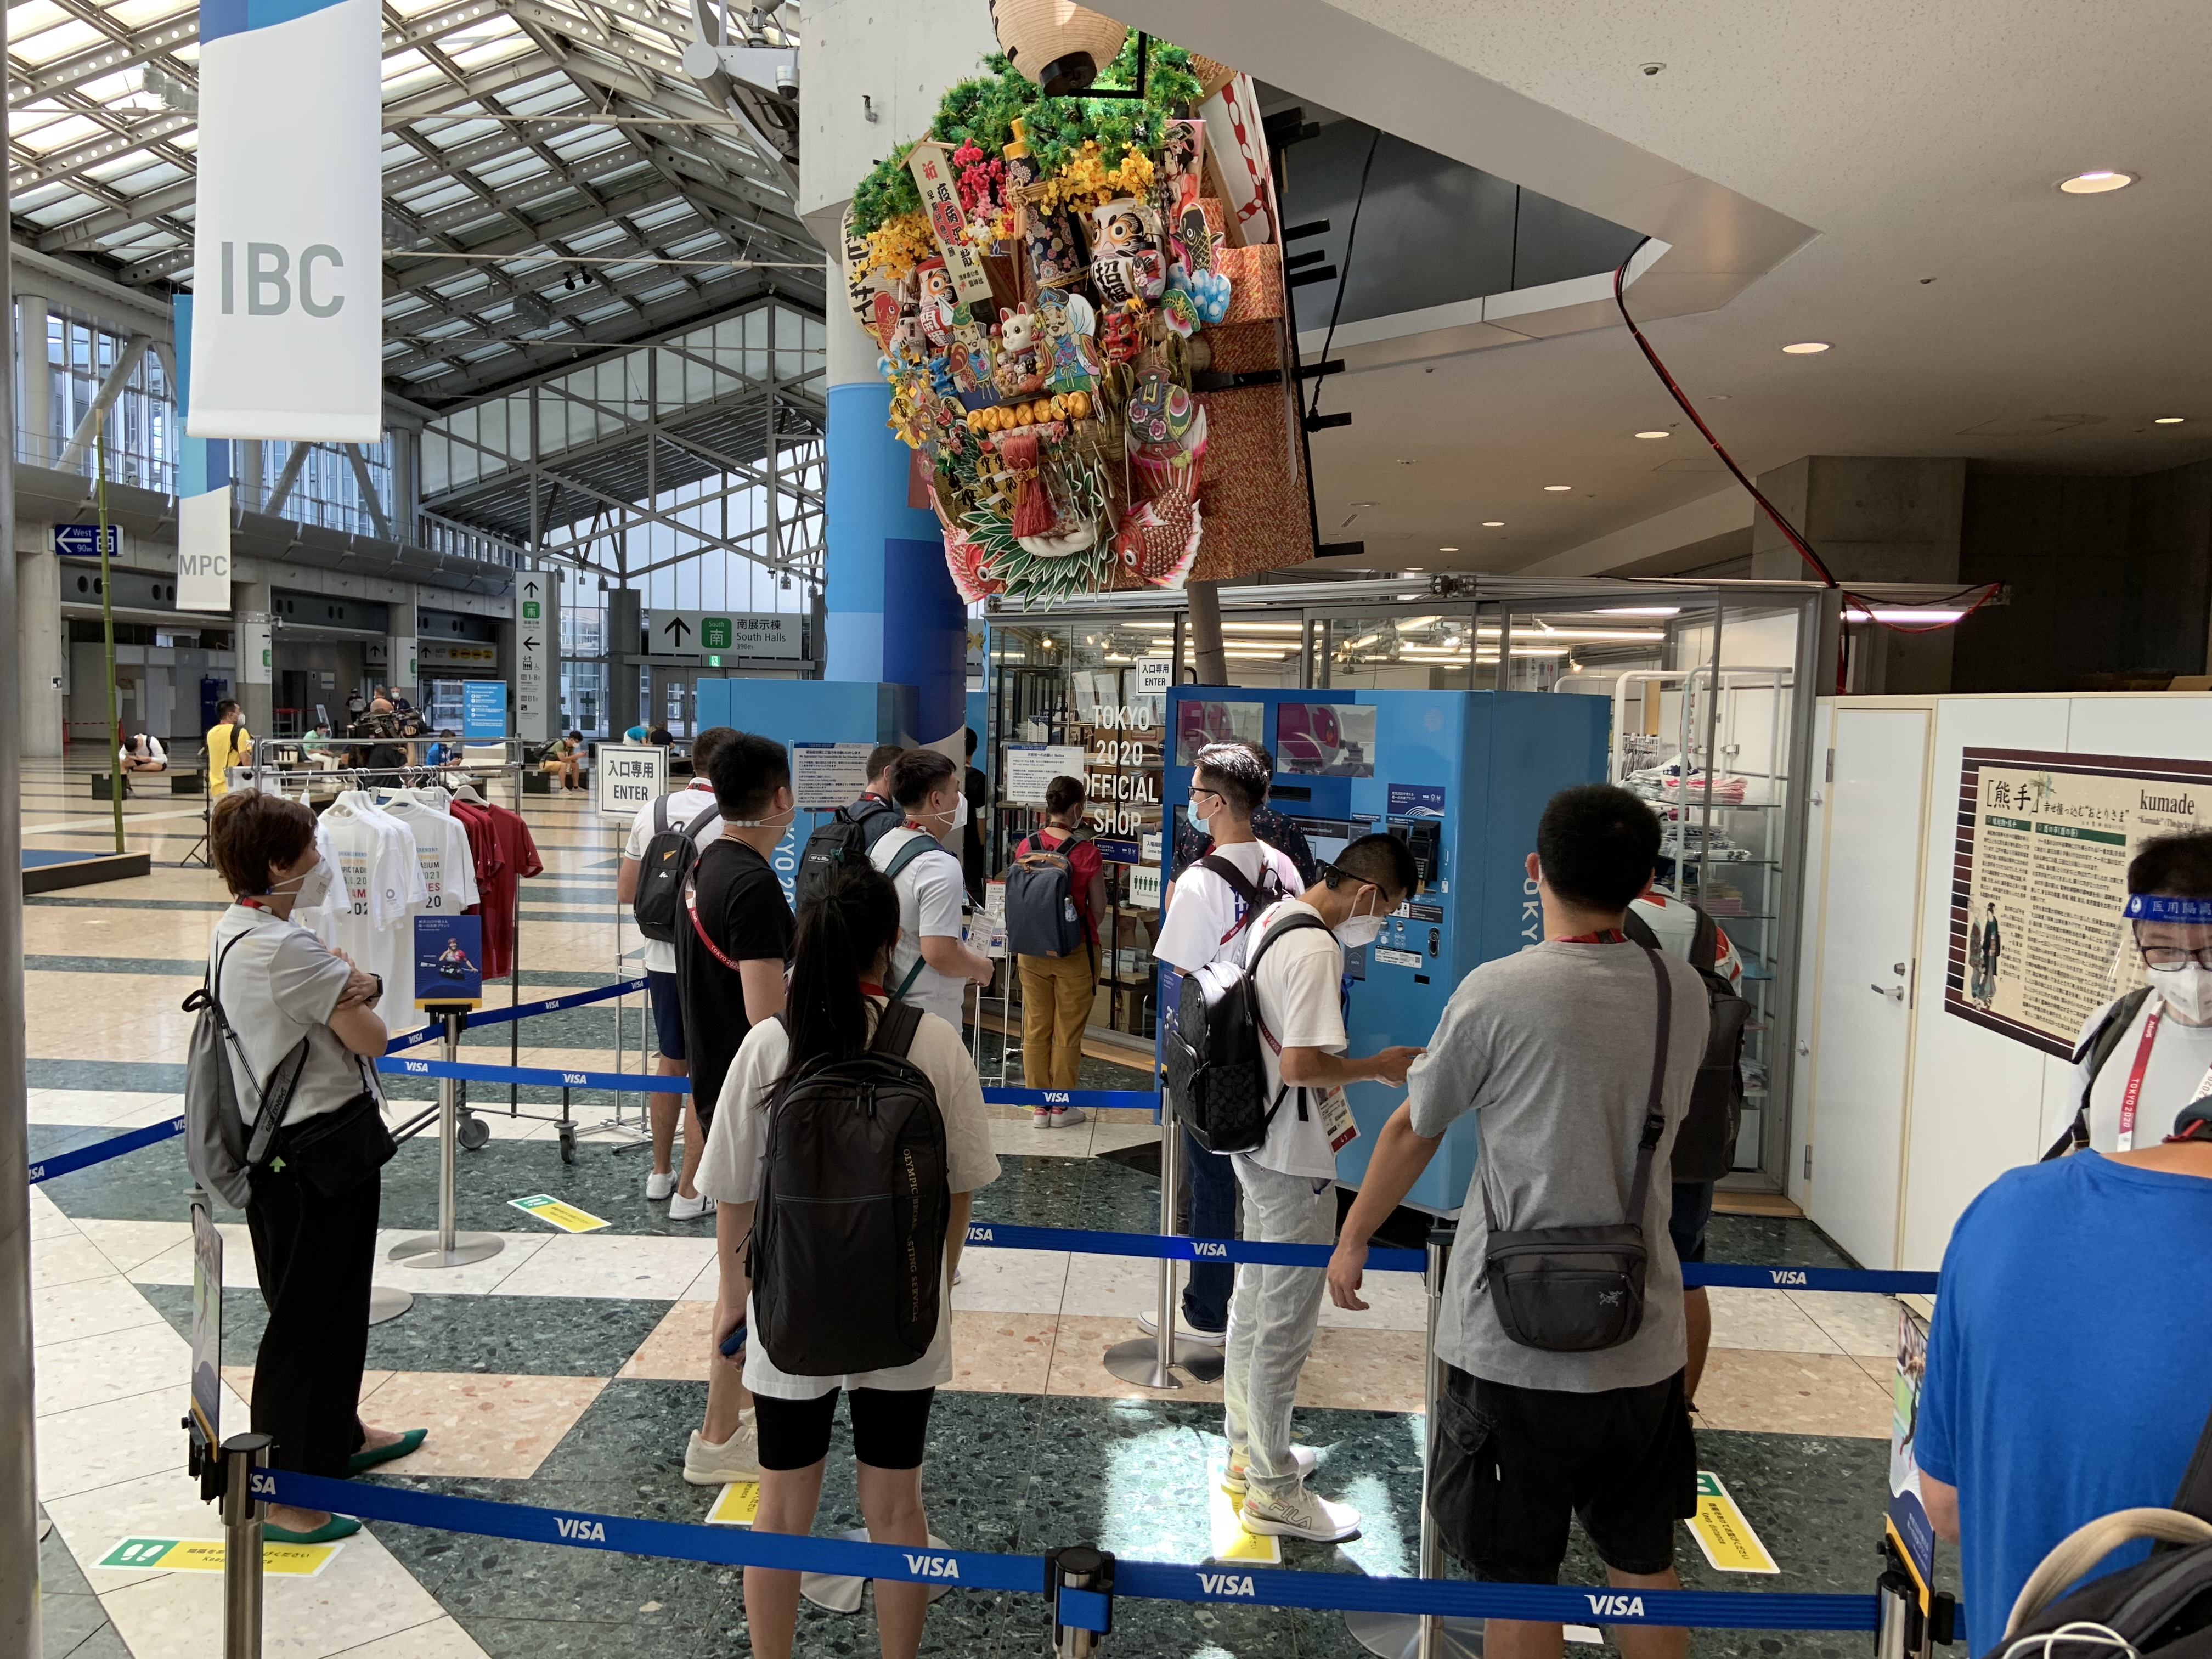 People line up to use an Olympic souvenir vending machine at the main press center in Tokyo.